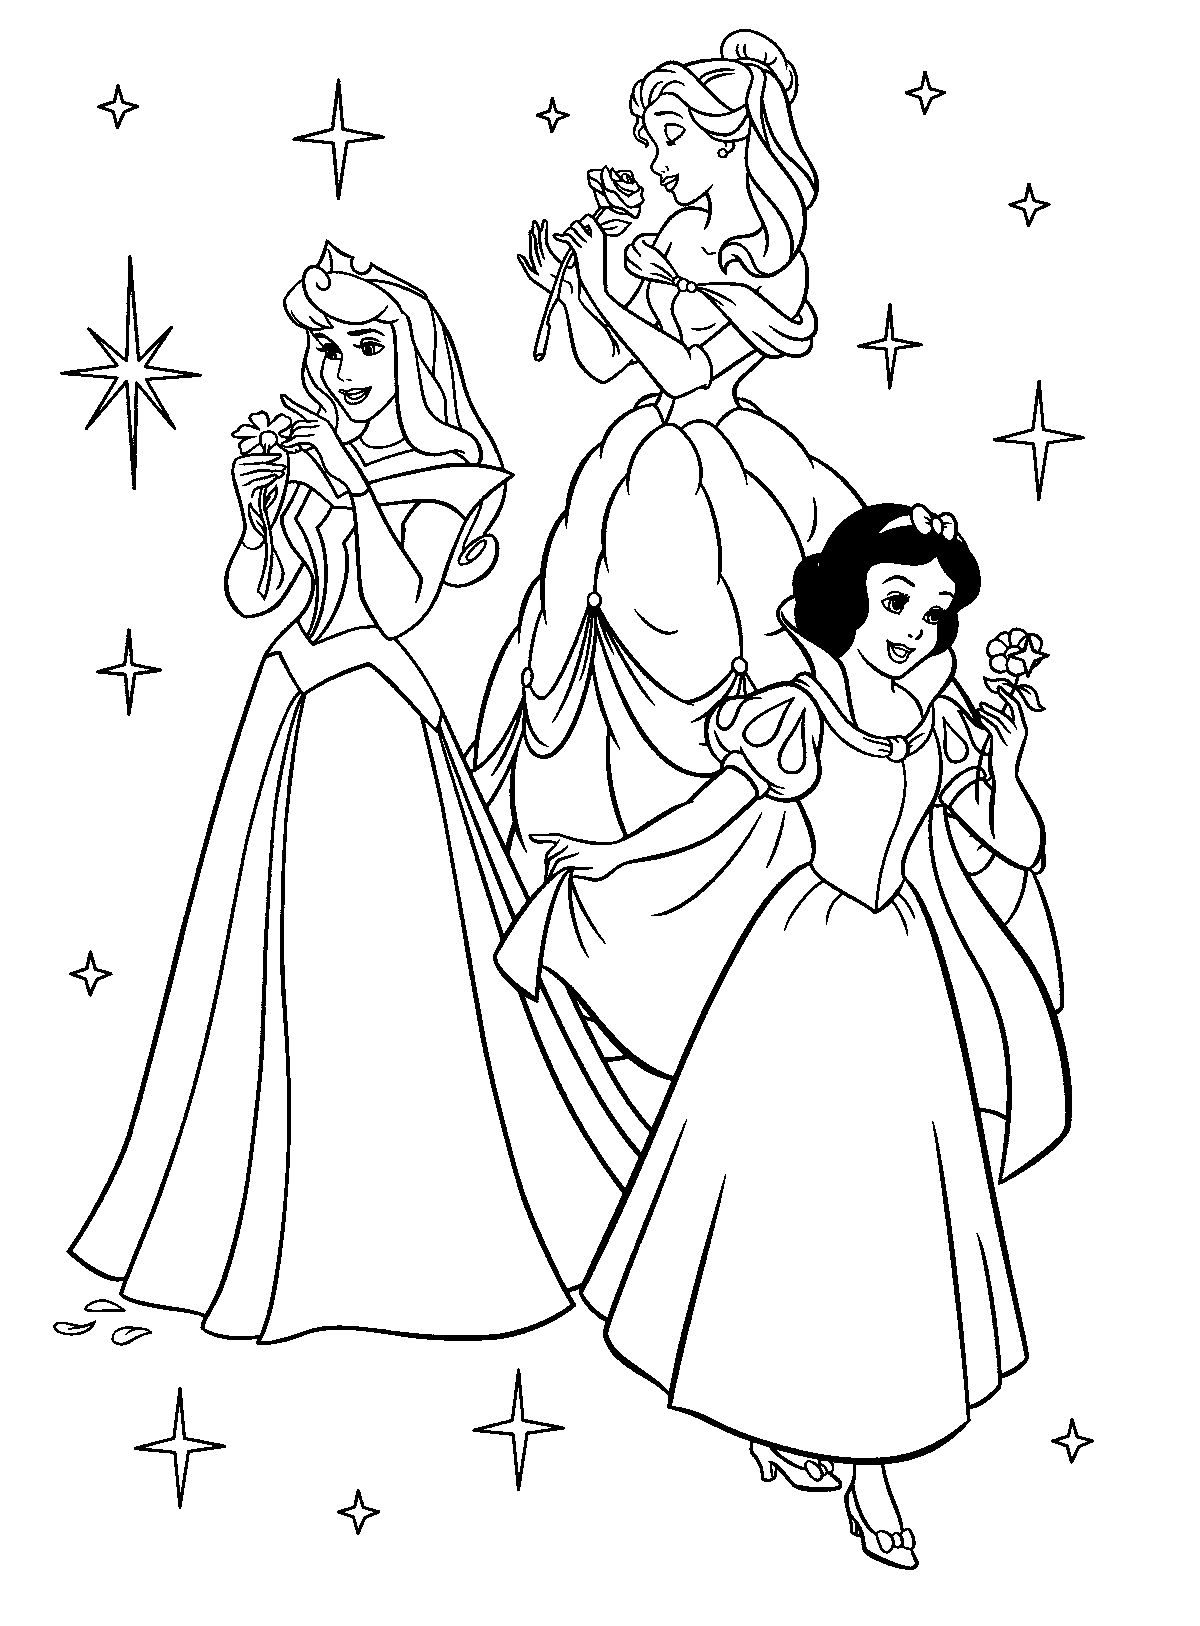 Free Printable Disney Princess Coloring Pages For Kids   Színezők - Free Printable Princess Coloring Pages